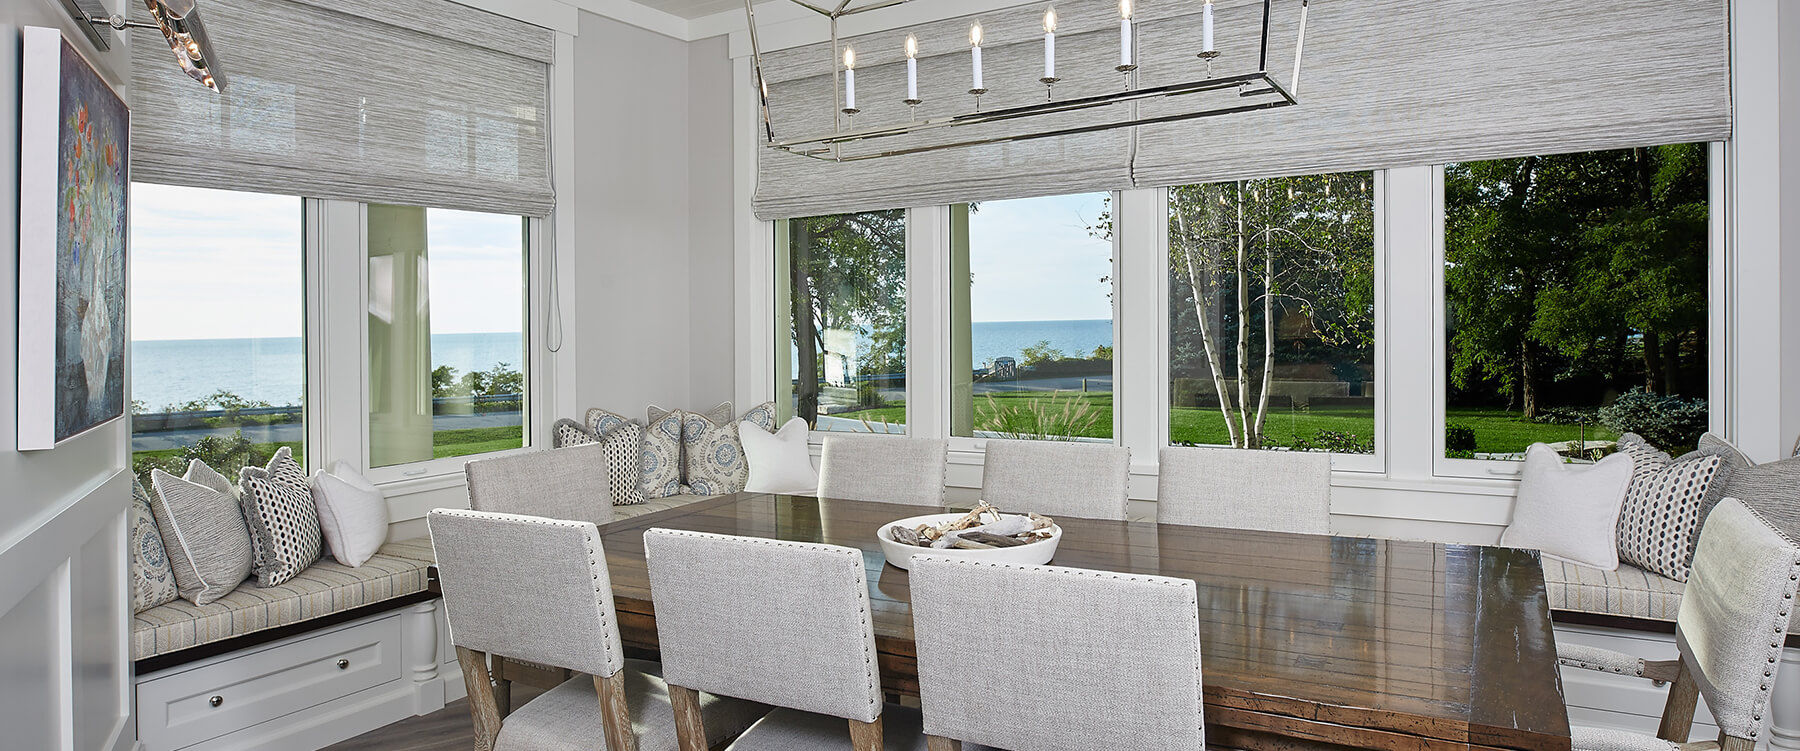 Dining room at Lake Michigan retreat